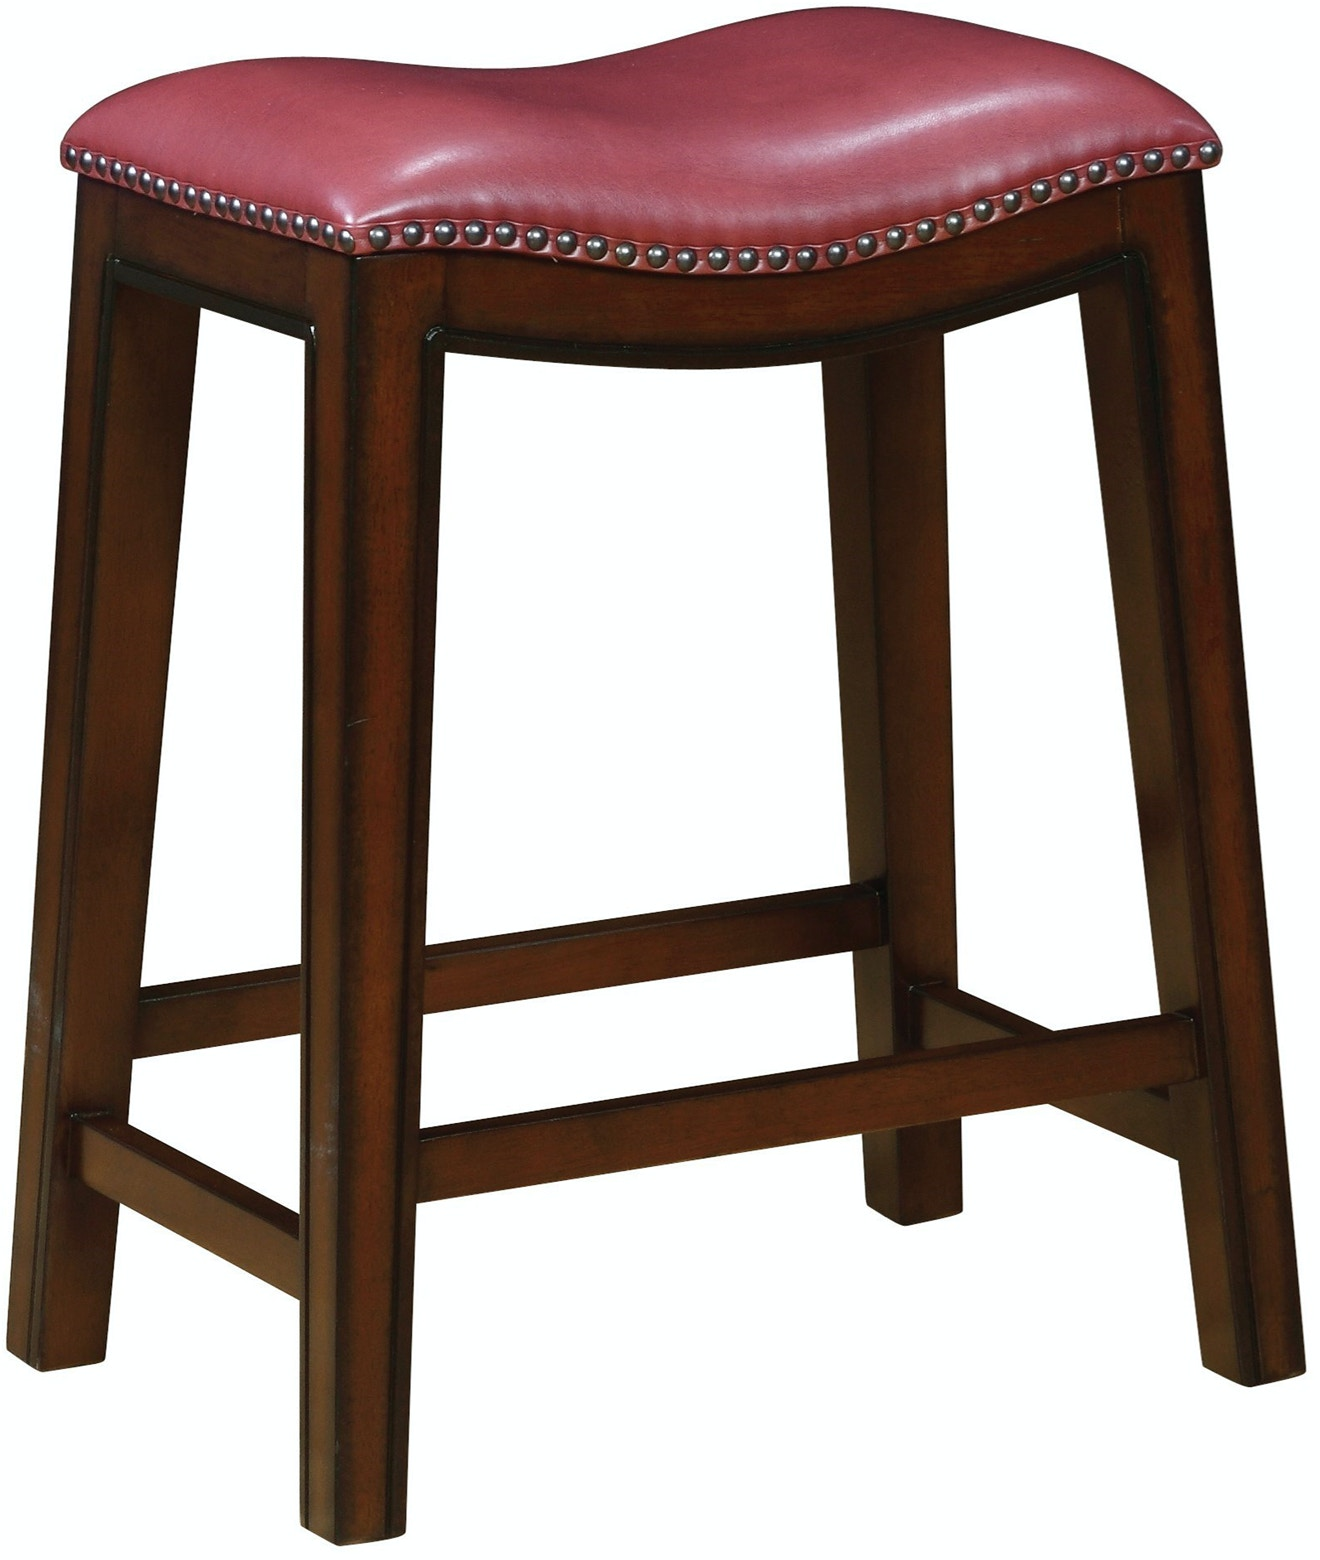 Coaster Co Of America Bar And Game Room Crispin Counter